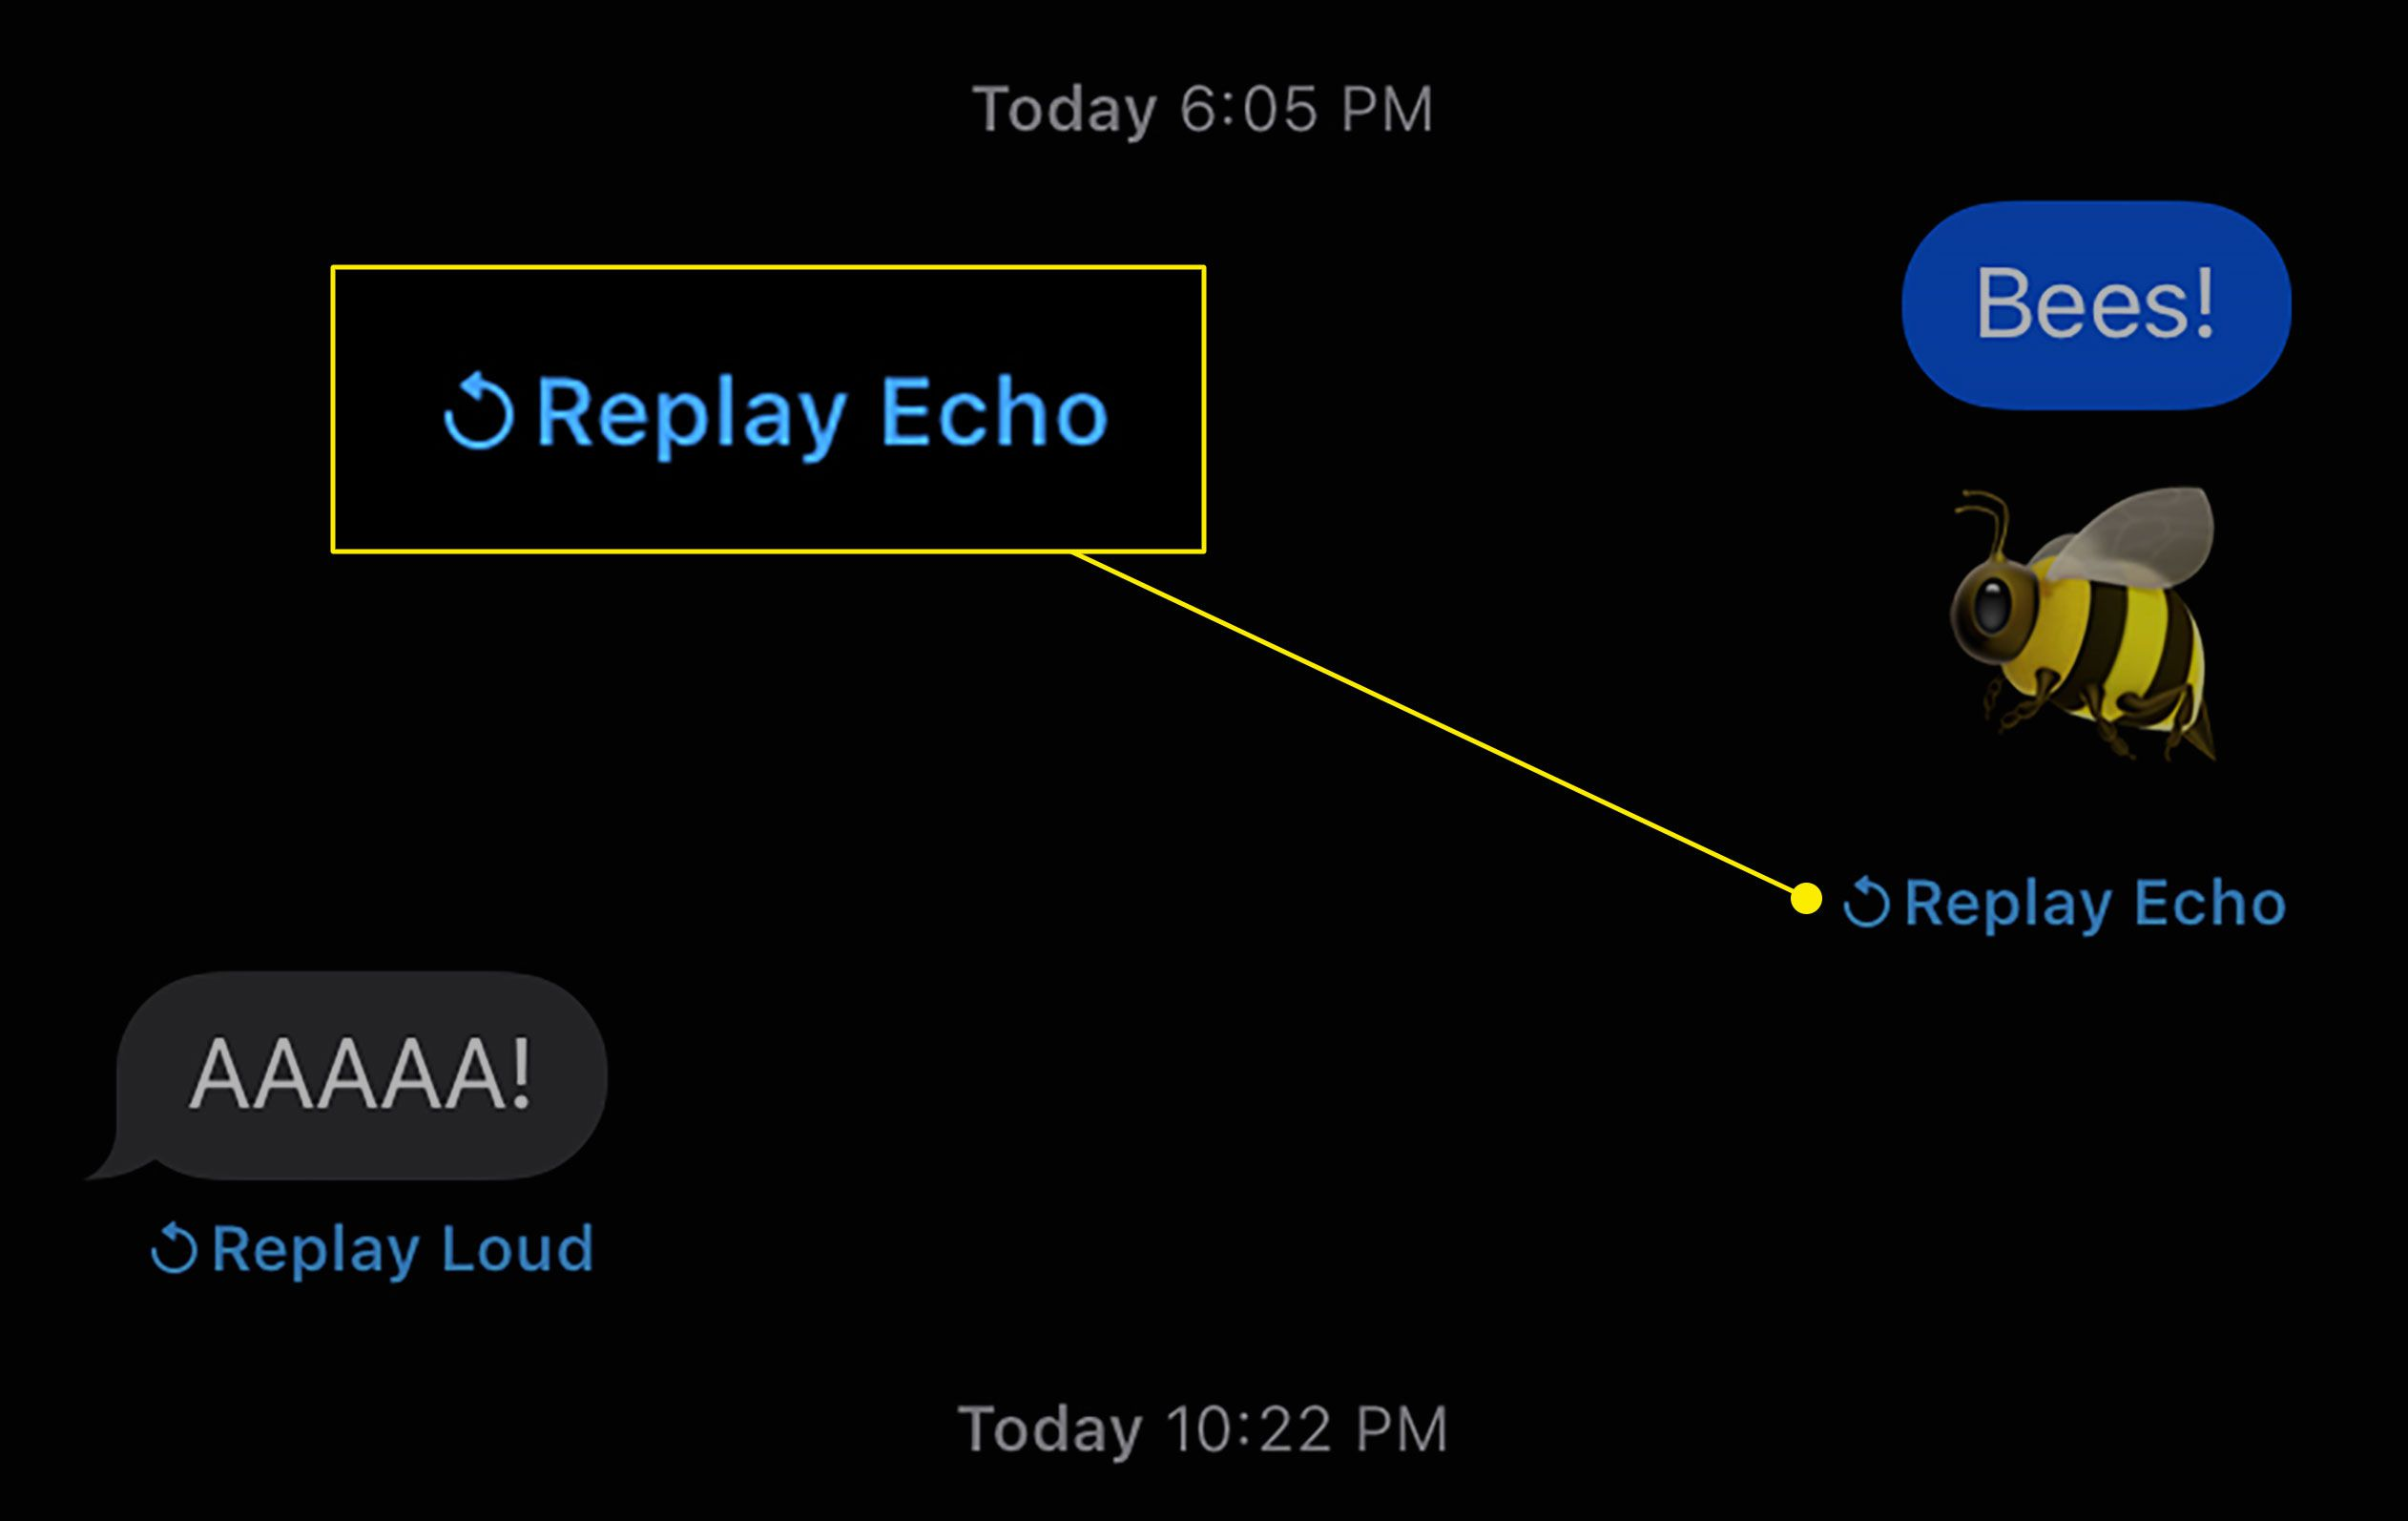 The Replay Effect button in Messages